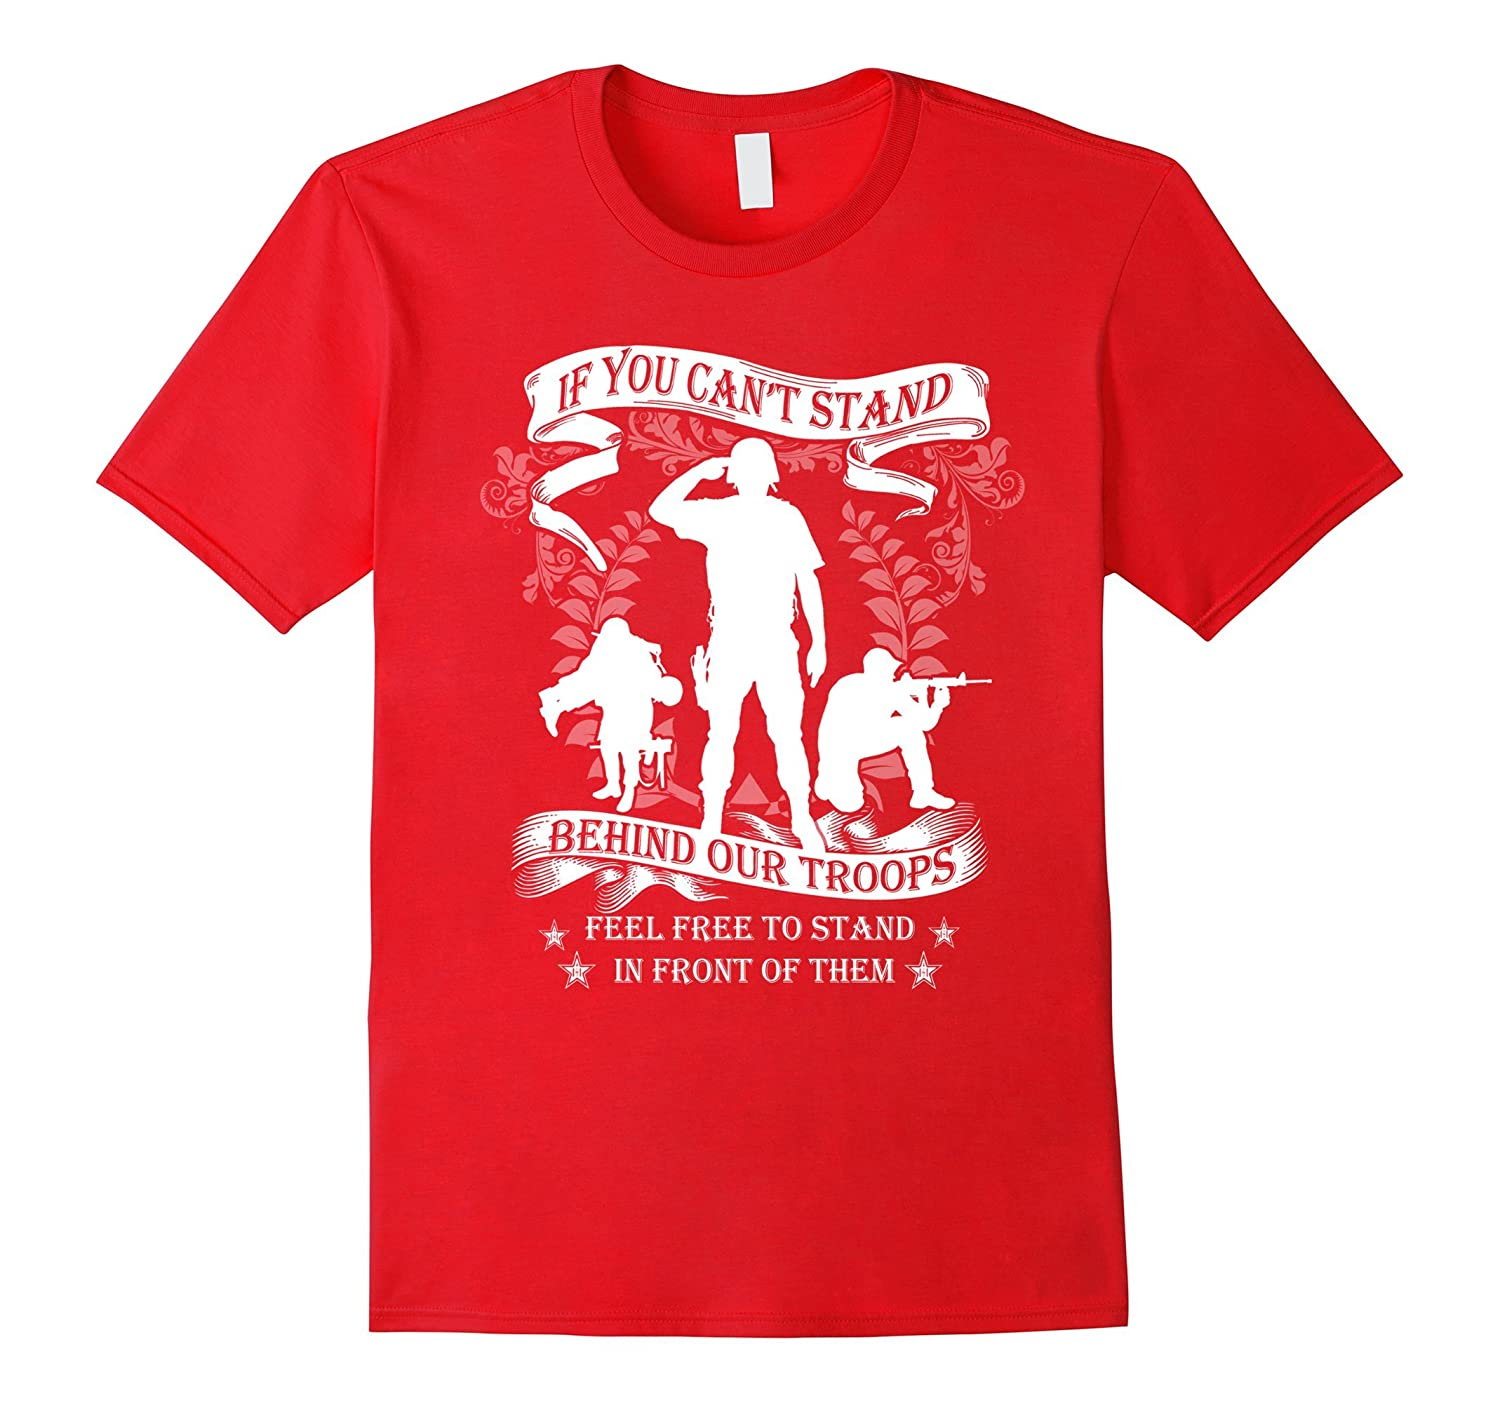 veteran t shirt if you cant stand behind our troops feel